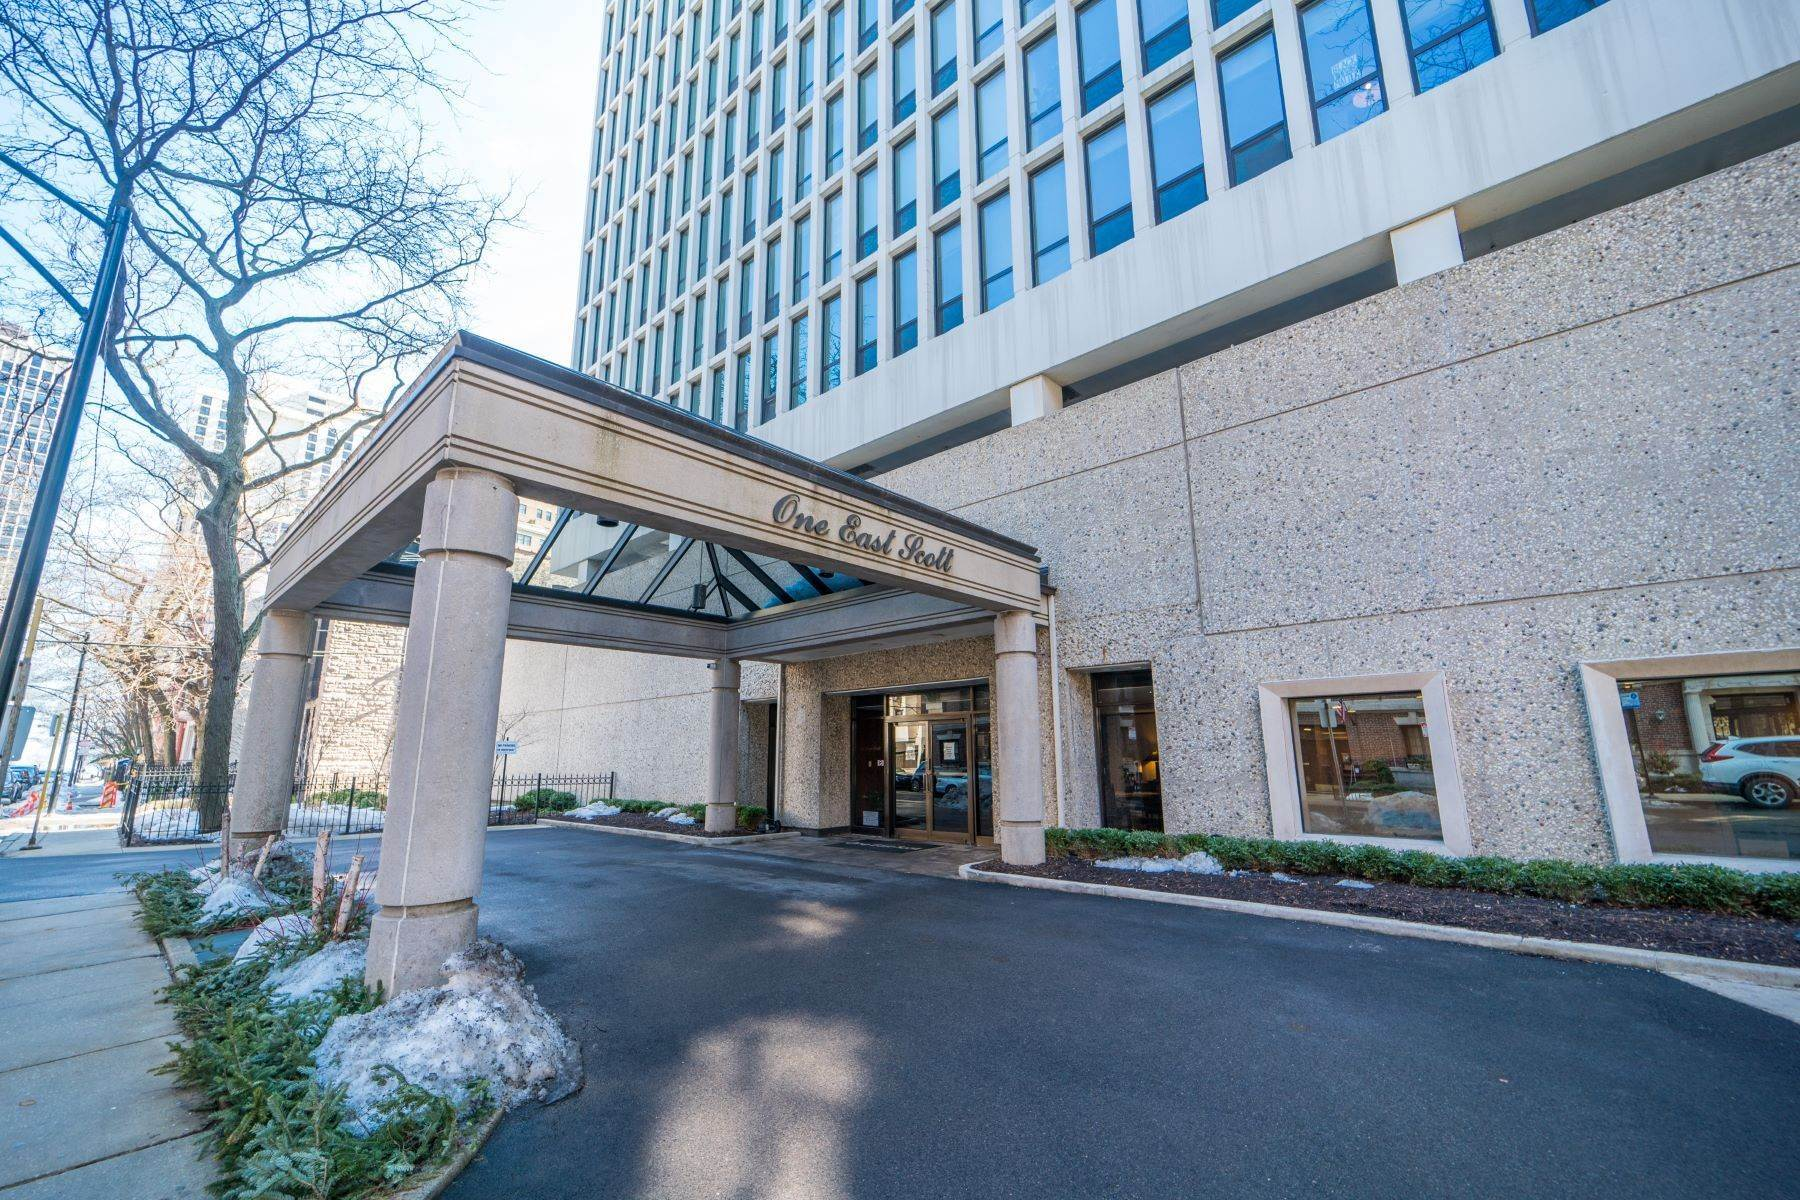 Property for Sale at Move in Ready Gold Coast Studio Condo 1 E Scott Street, Unit 906 Chicago, Illinois 60610 United States